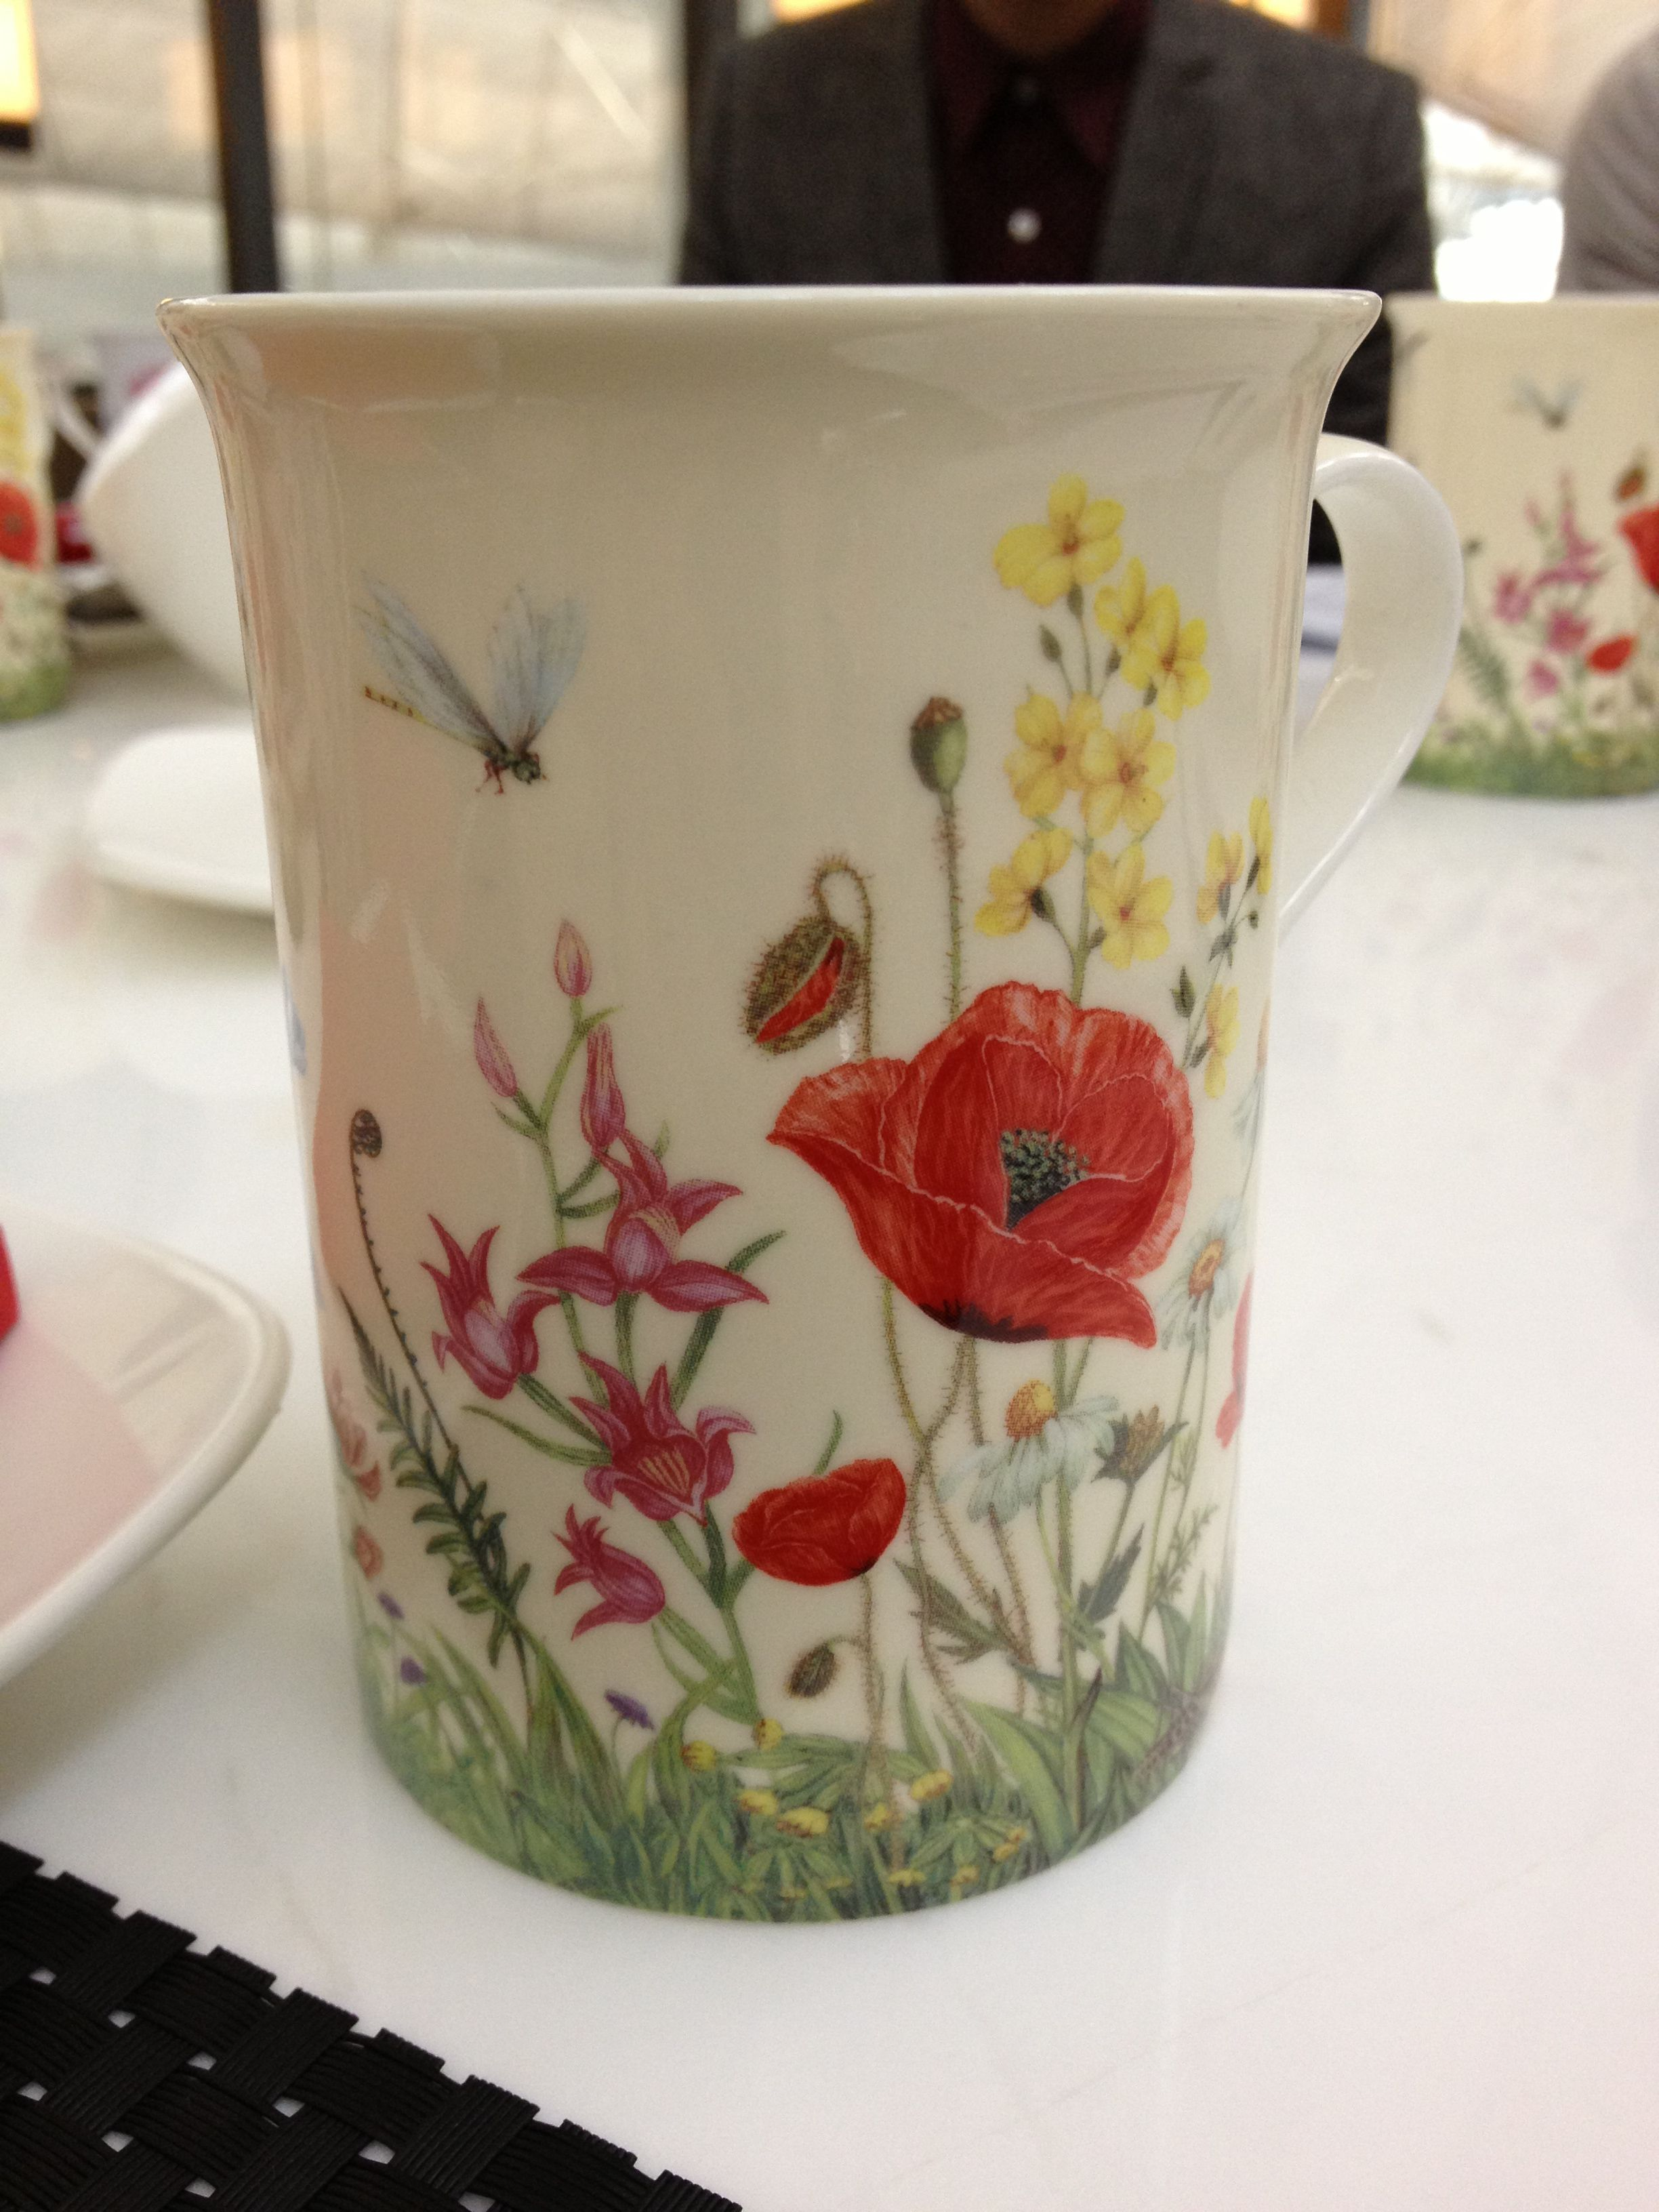 Flowers on a cup